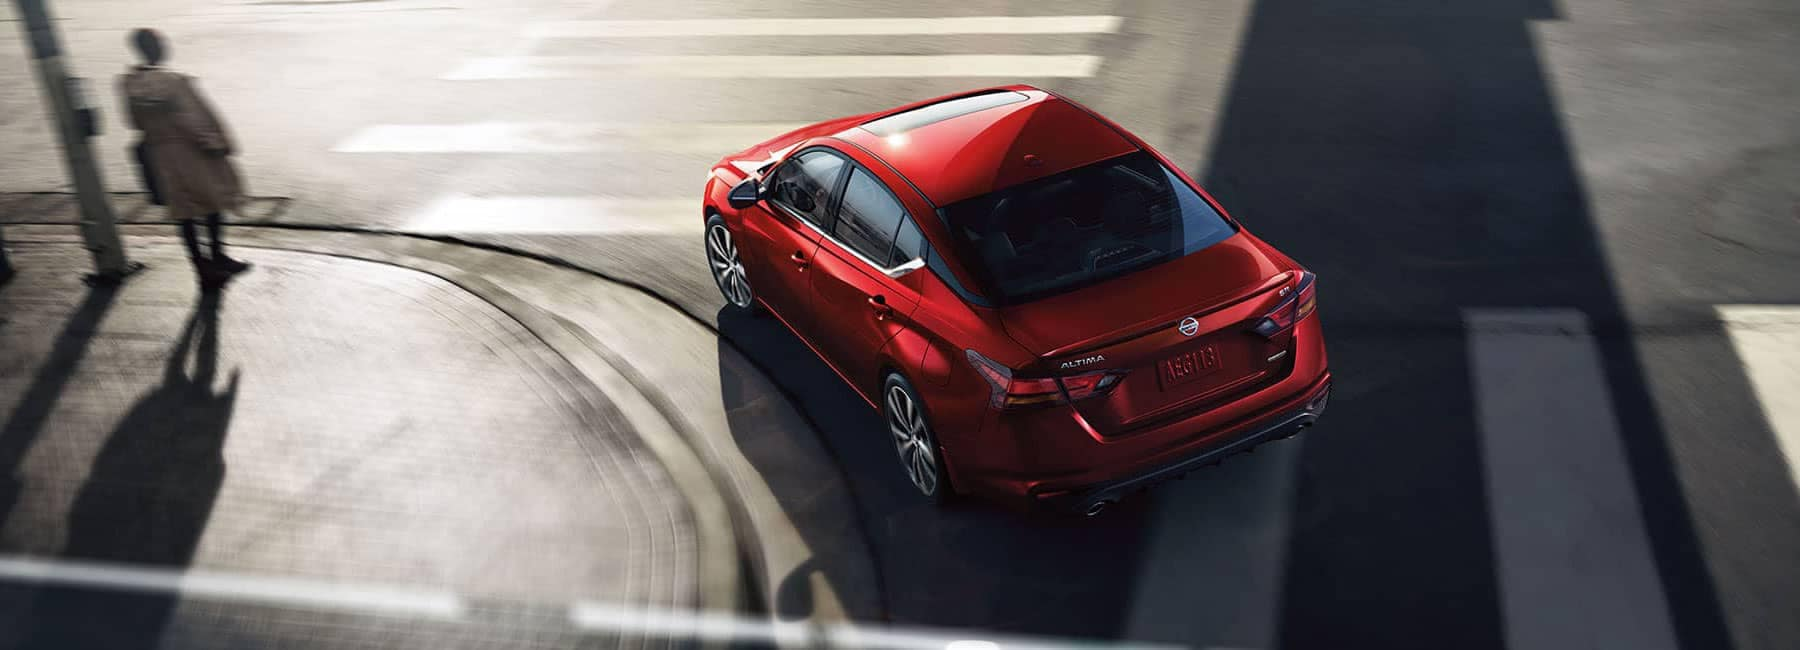 Documents to purchase a car at Boch Nissan in Norwood | Red Nissan altima on the road